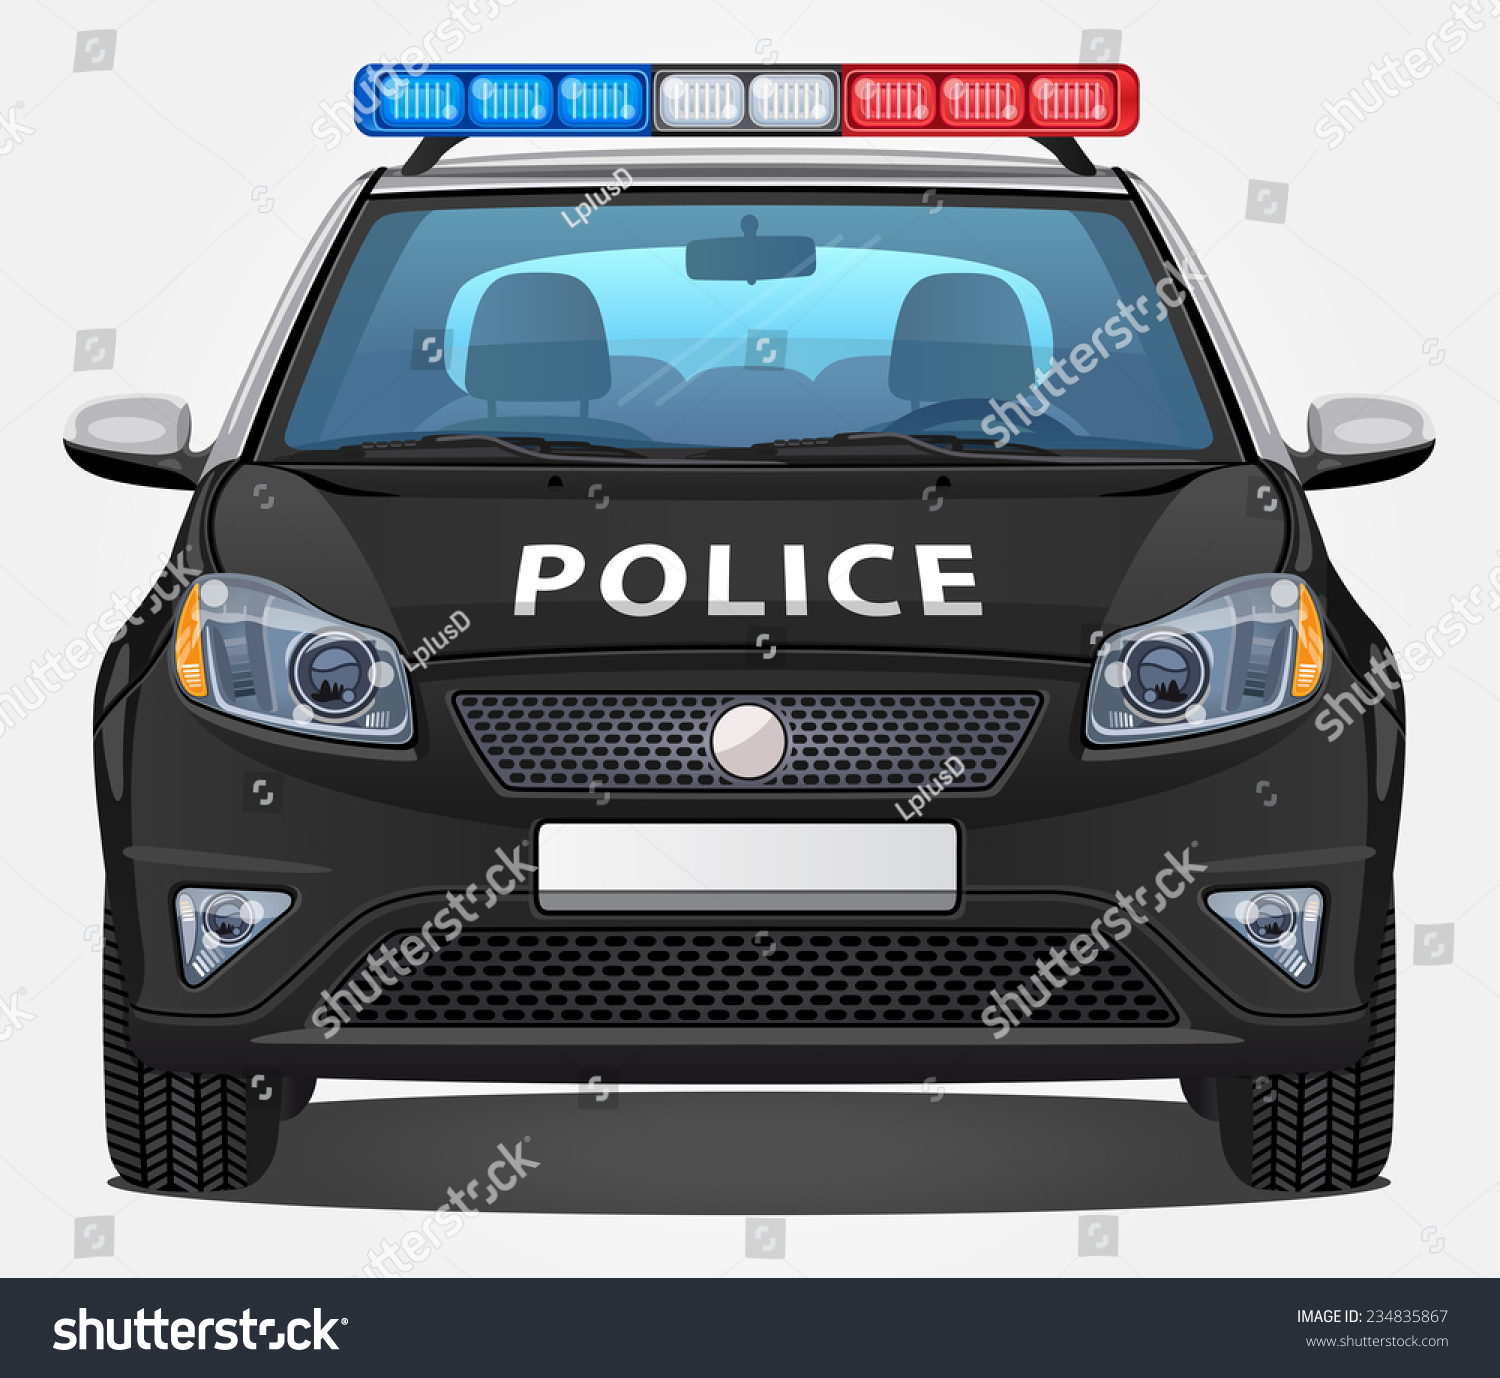 vector police car 1 front view stock vector 234835867 shutterstock. Black Bedroom Furniture Sets. Home Design Ideas